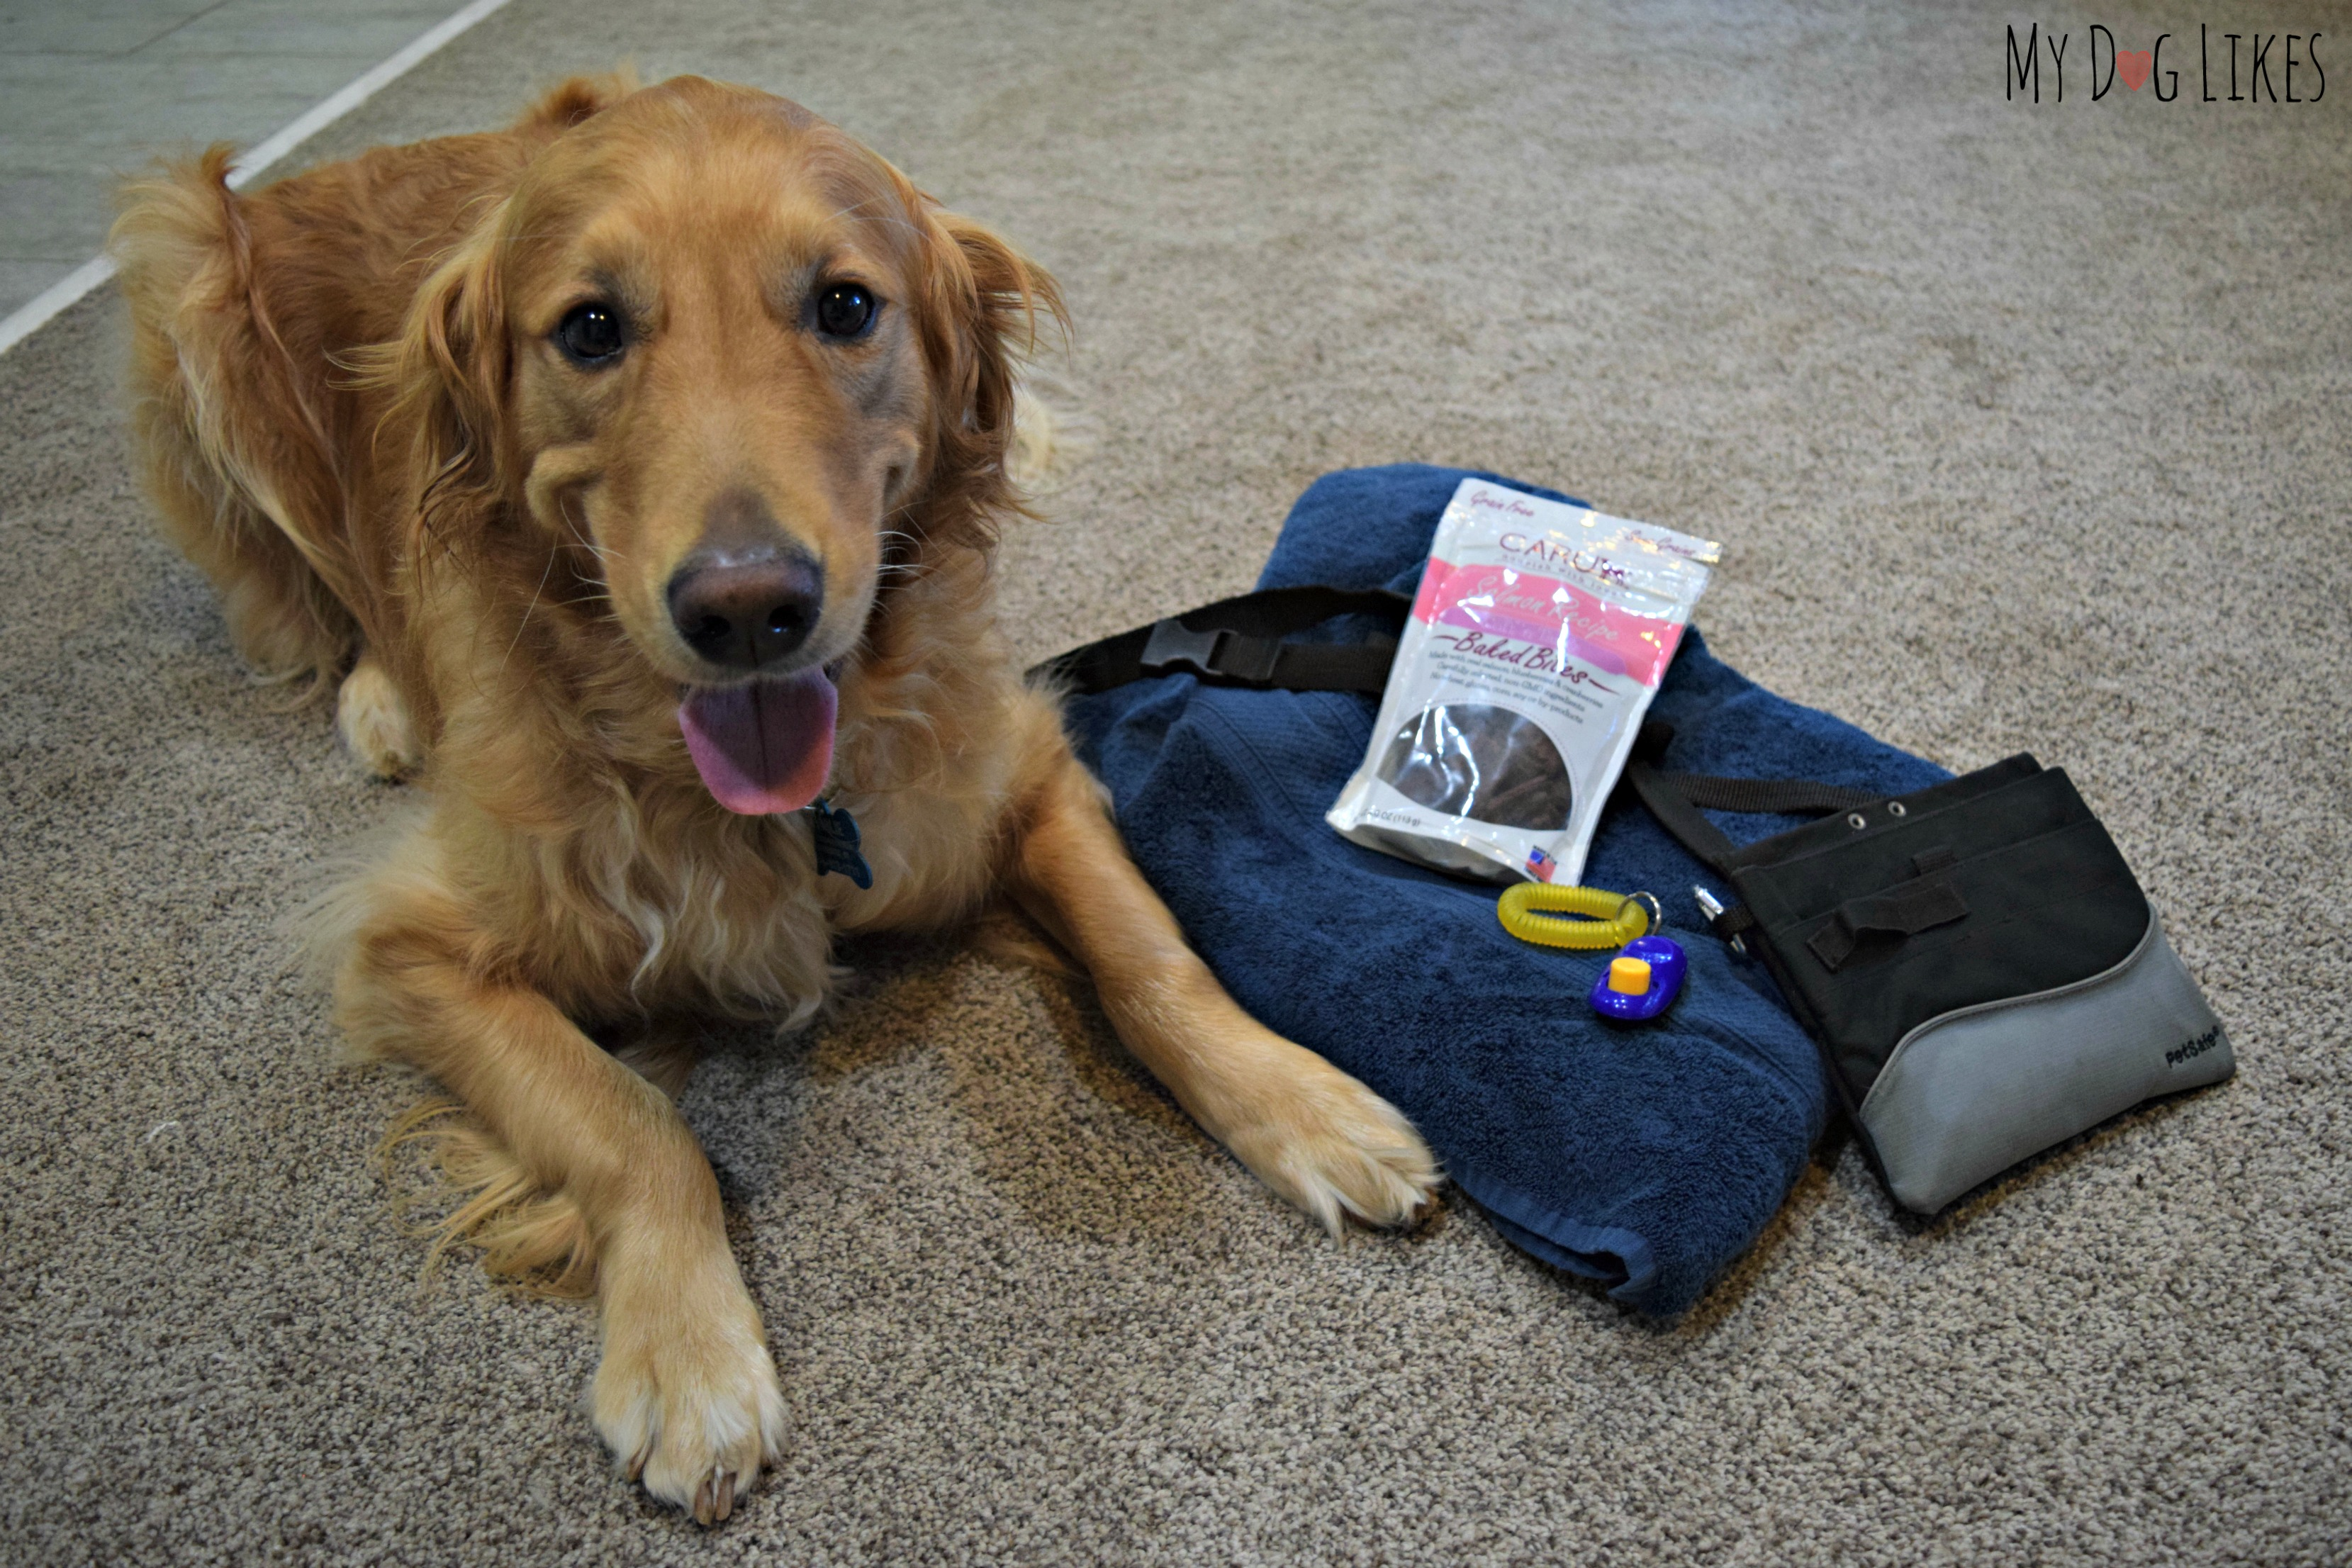 Gathering supplies to teach Charlie a new trick - treats, treat pouch, clicker and towel.